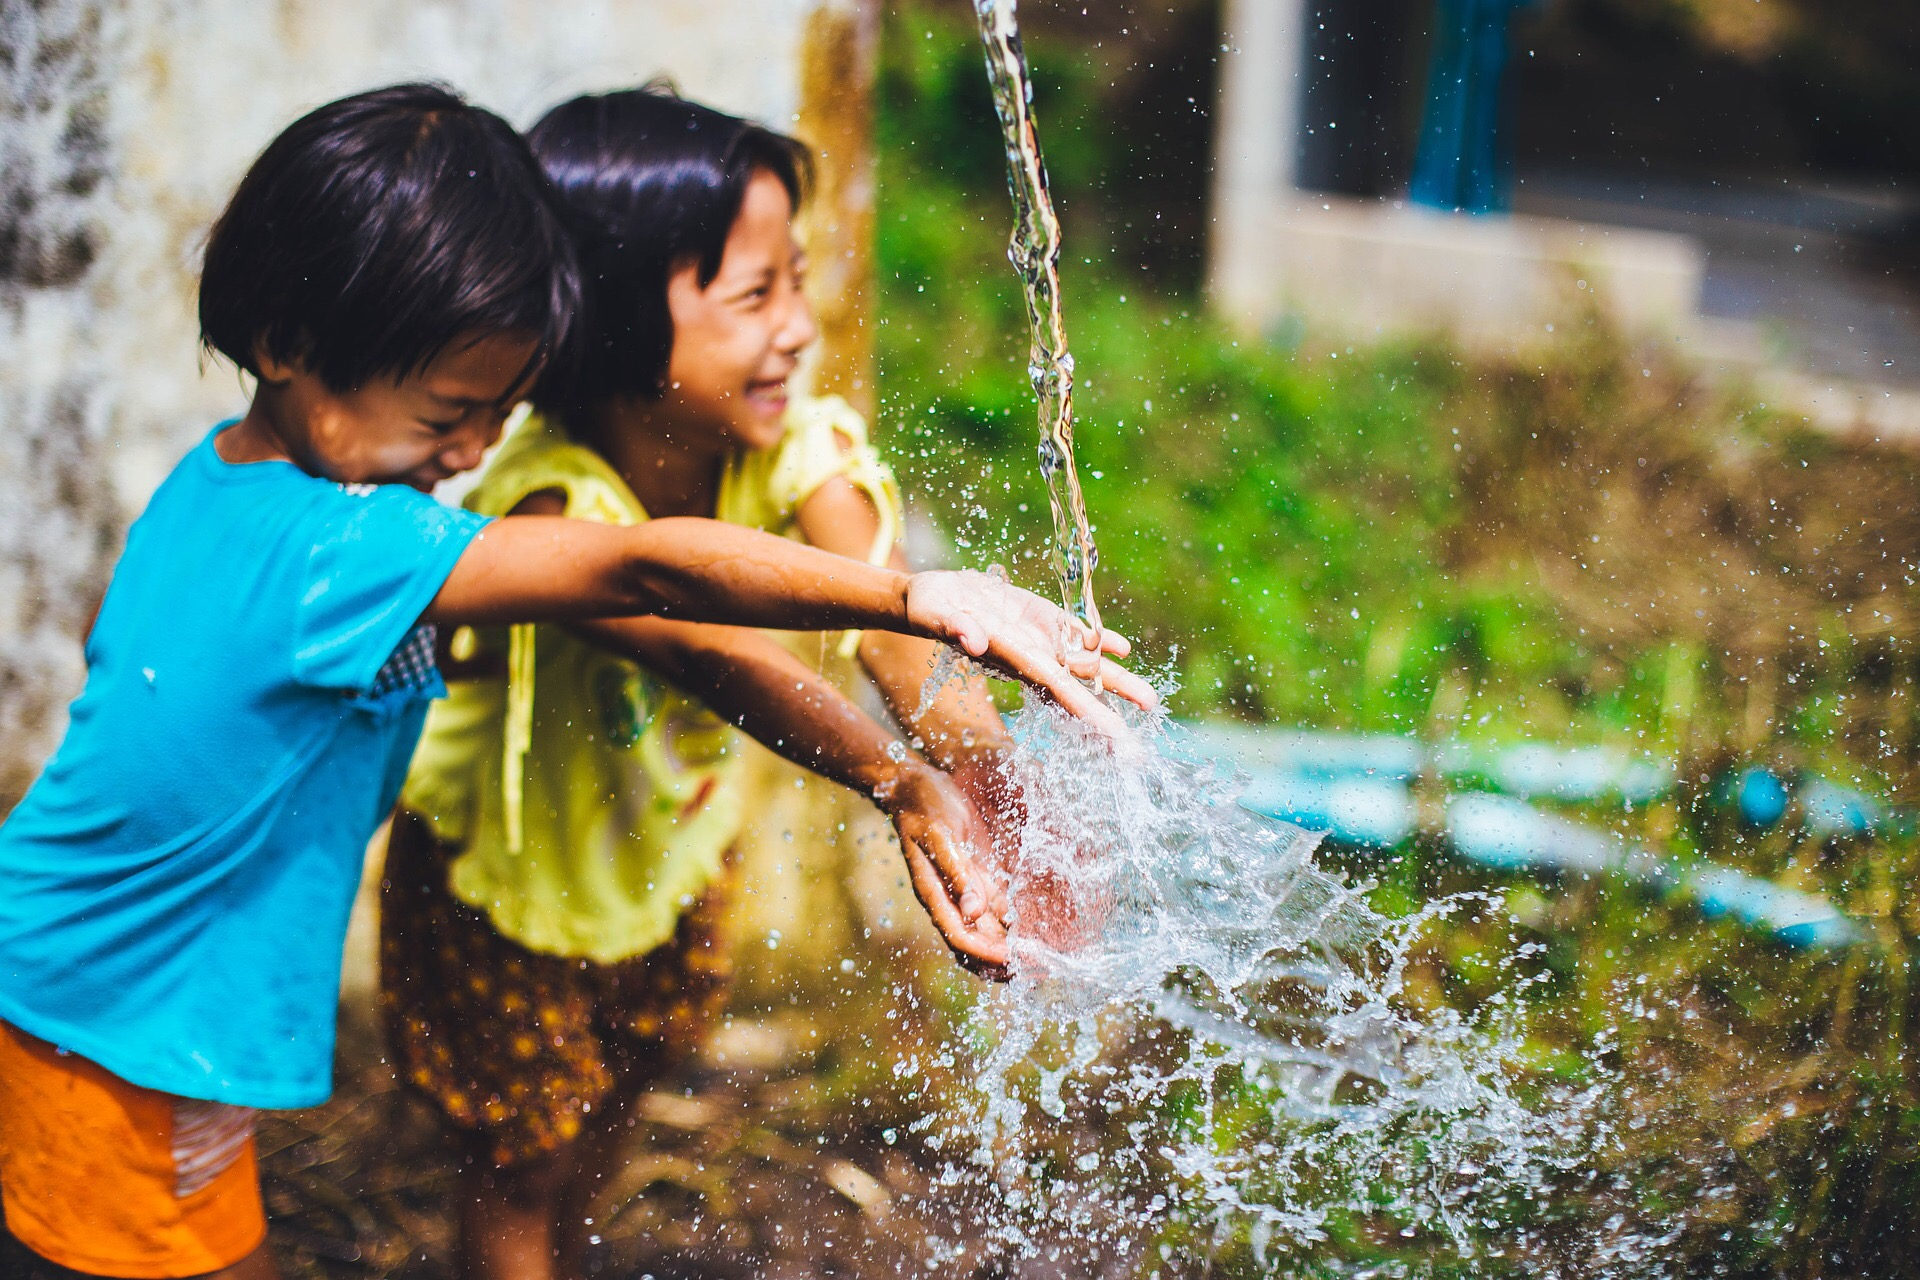 Worldwide access to clean water increases from 79% to 90% of global population